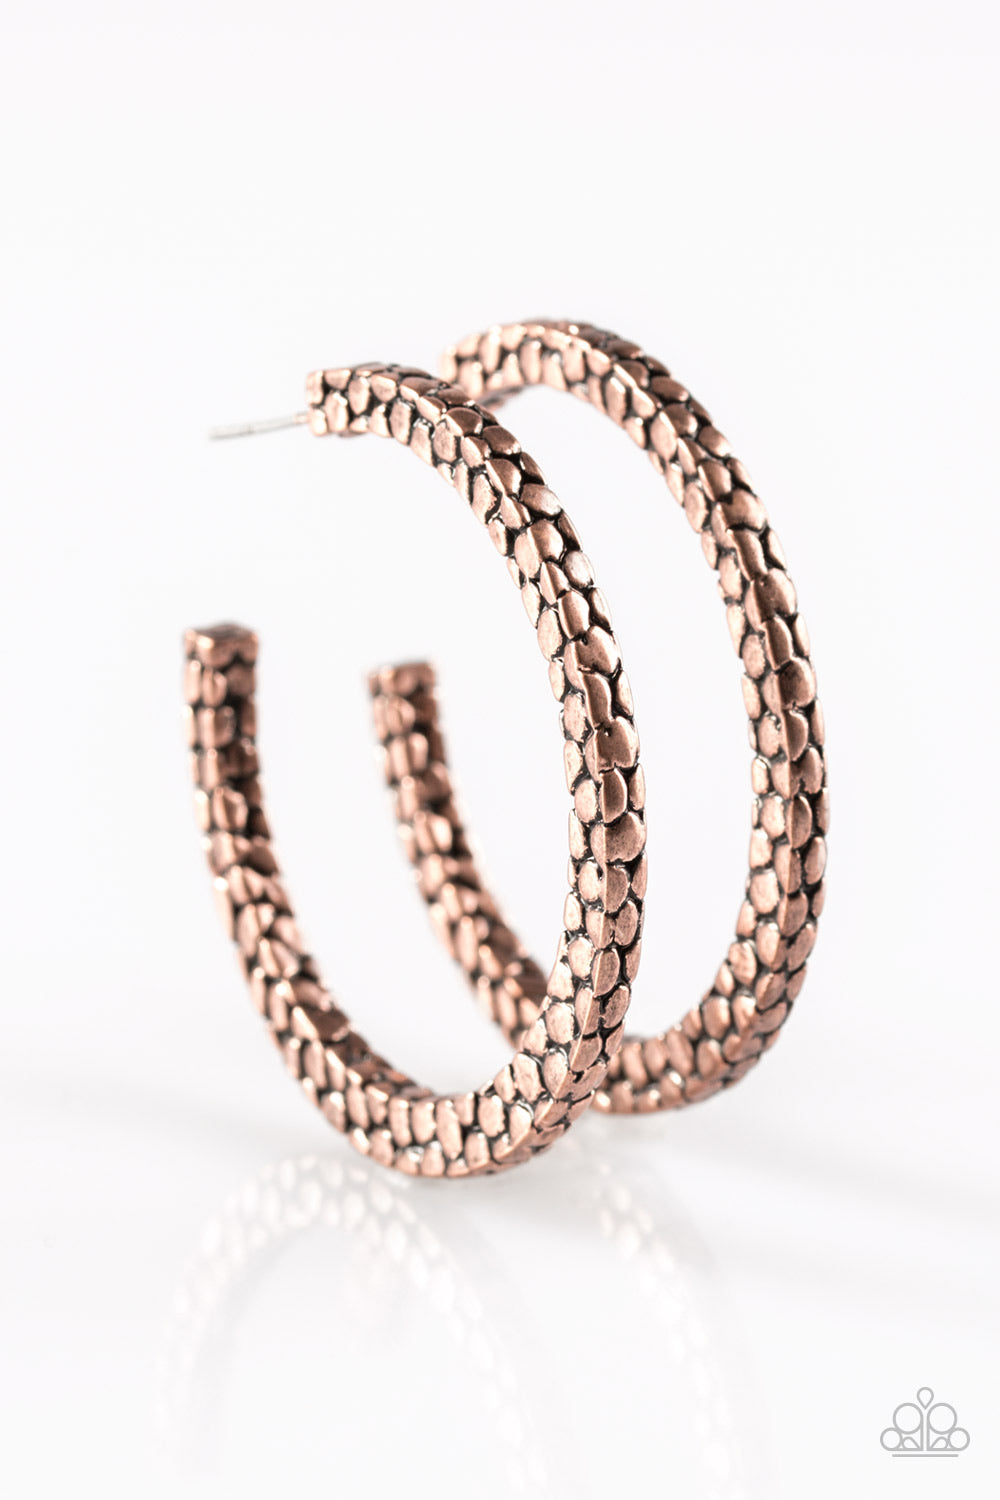 Make The Beast of It - Copper Hoop Earrings - Paparazzi Accessories